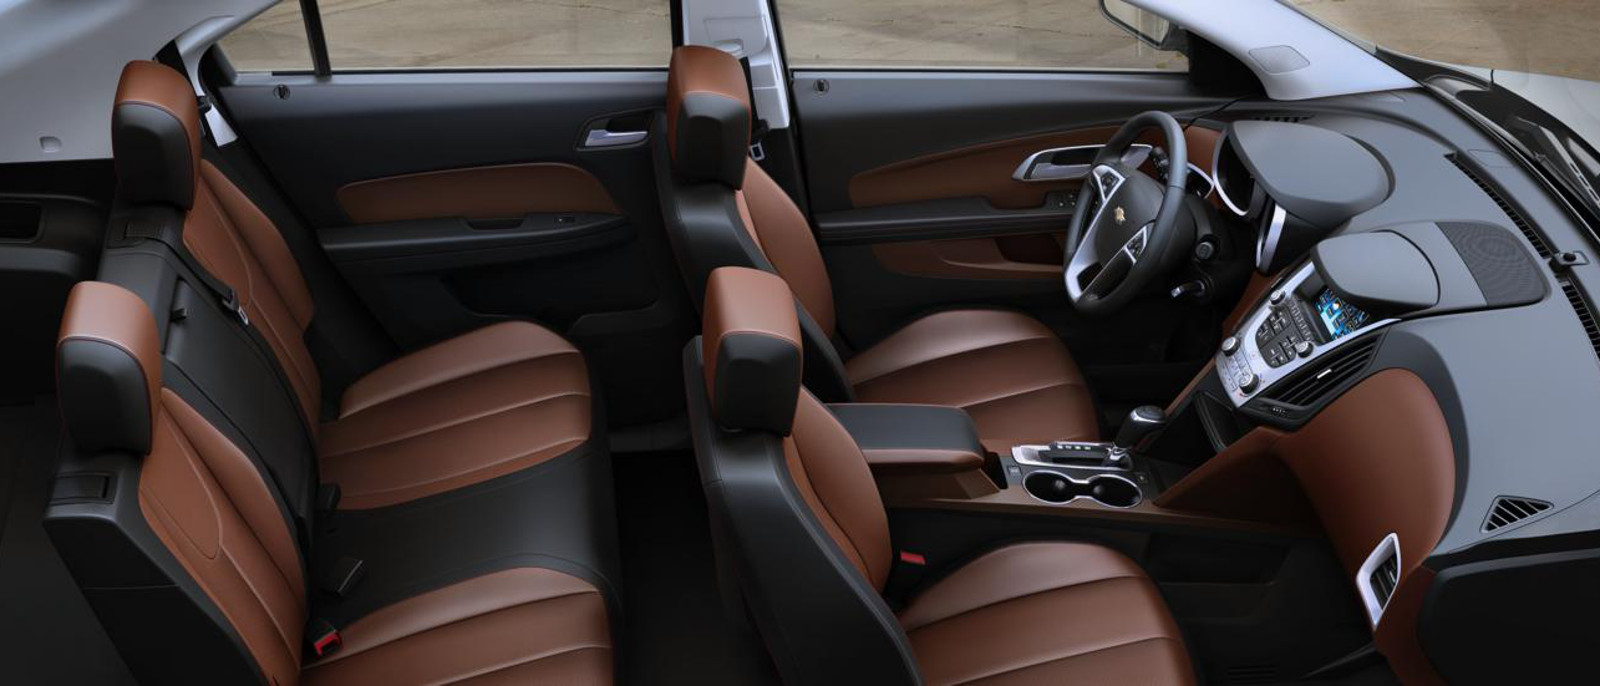 2016 Equinox Spacious Interior